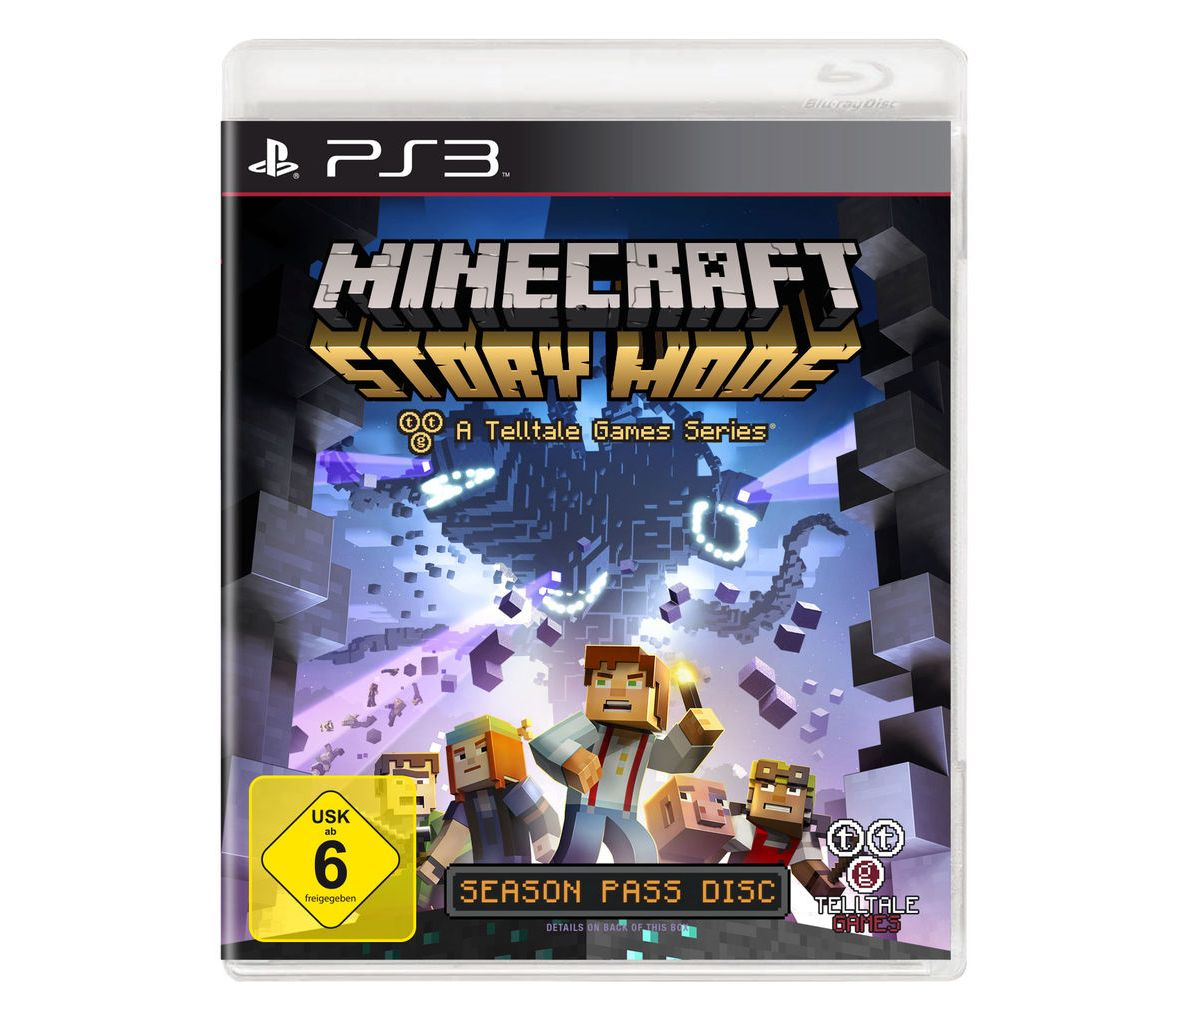 Telltale Games Playstation 3 - Spiel »Minecraft...